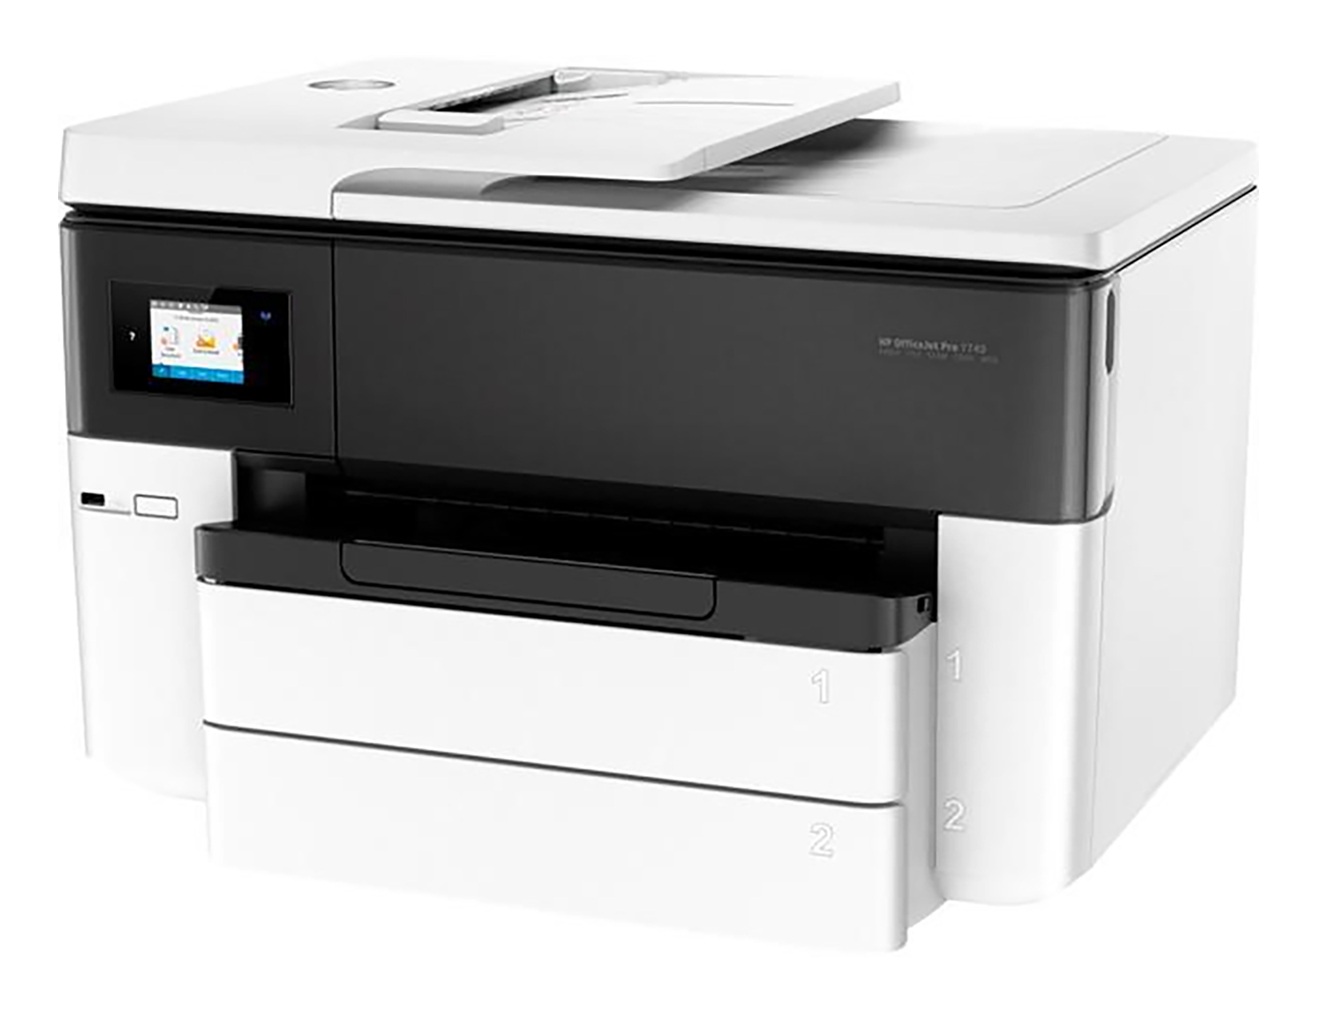 Harga Jual HP OfficeJet Pro 7740 Wide Format All-in-One Printer(G5J38A)